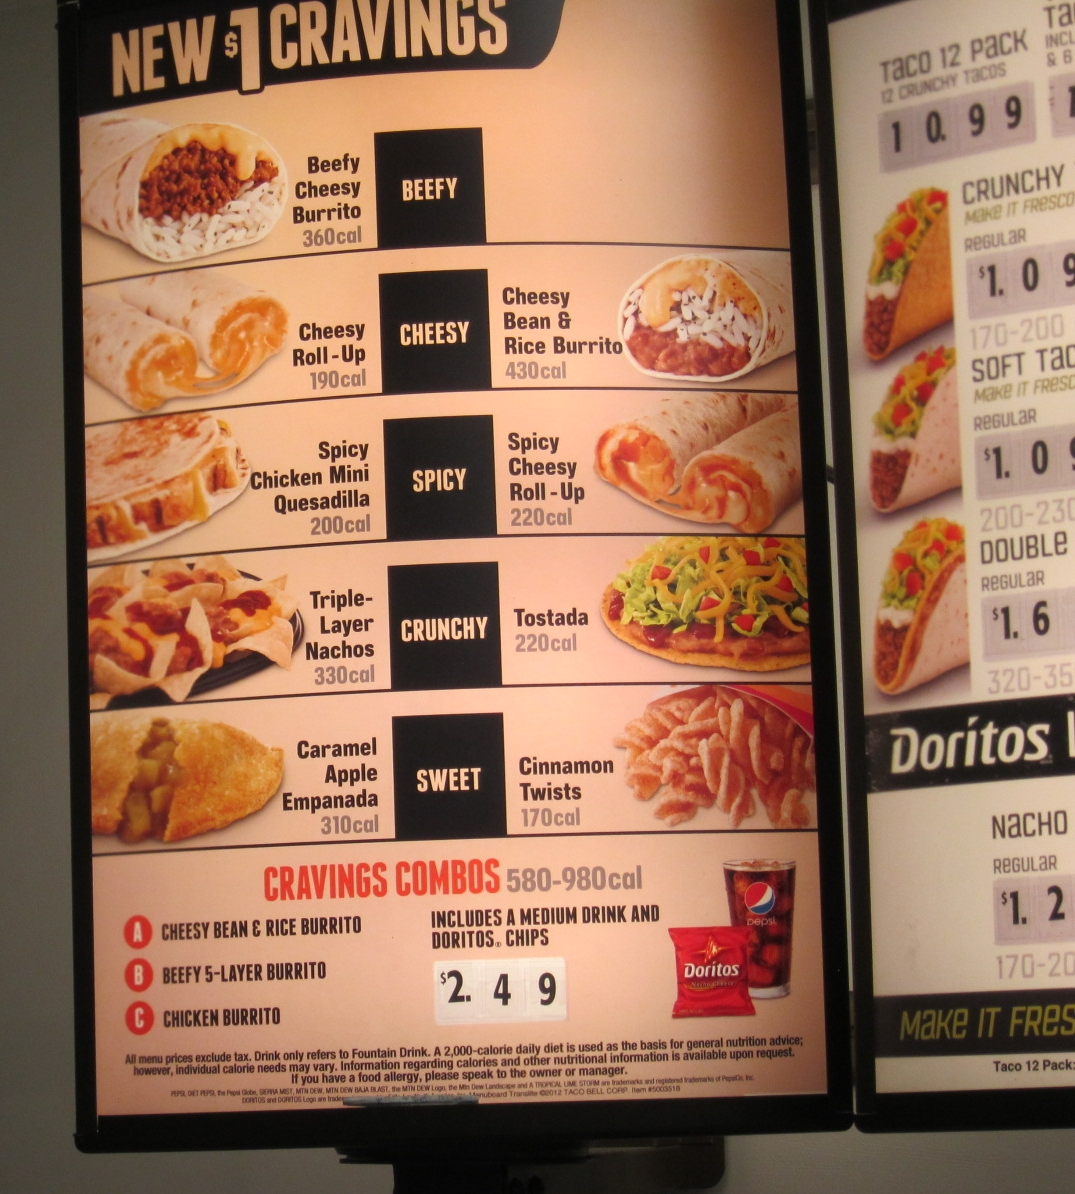 news: taco bell tests new $1 cravings menu | brand eating